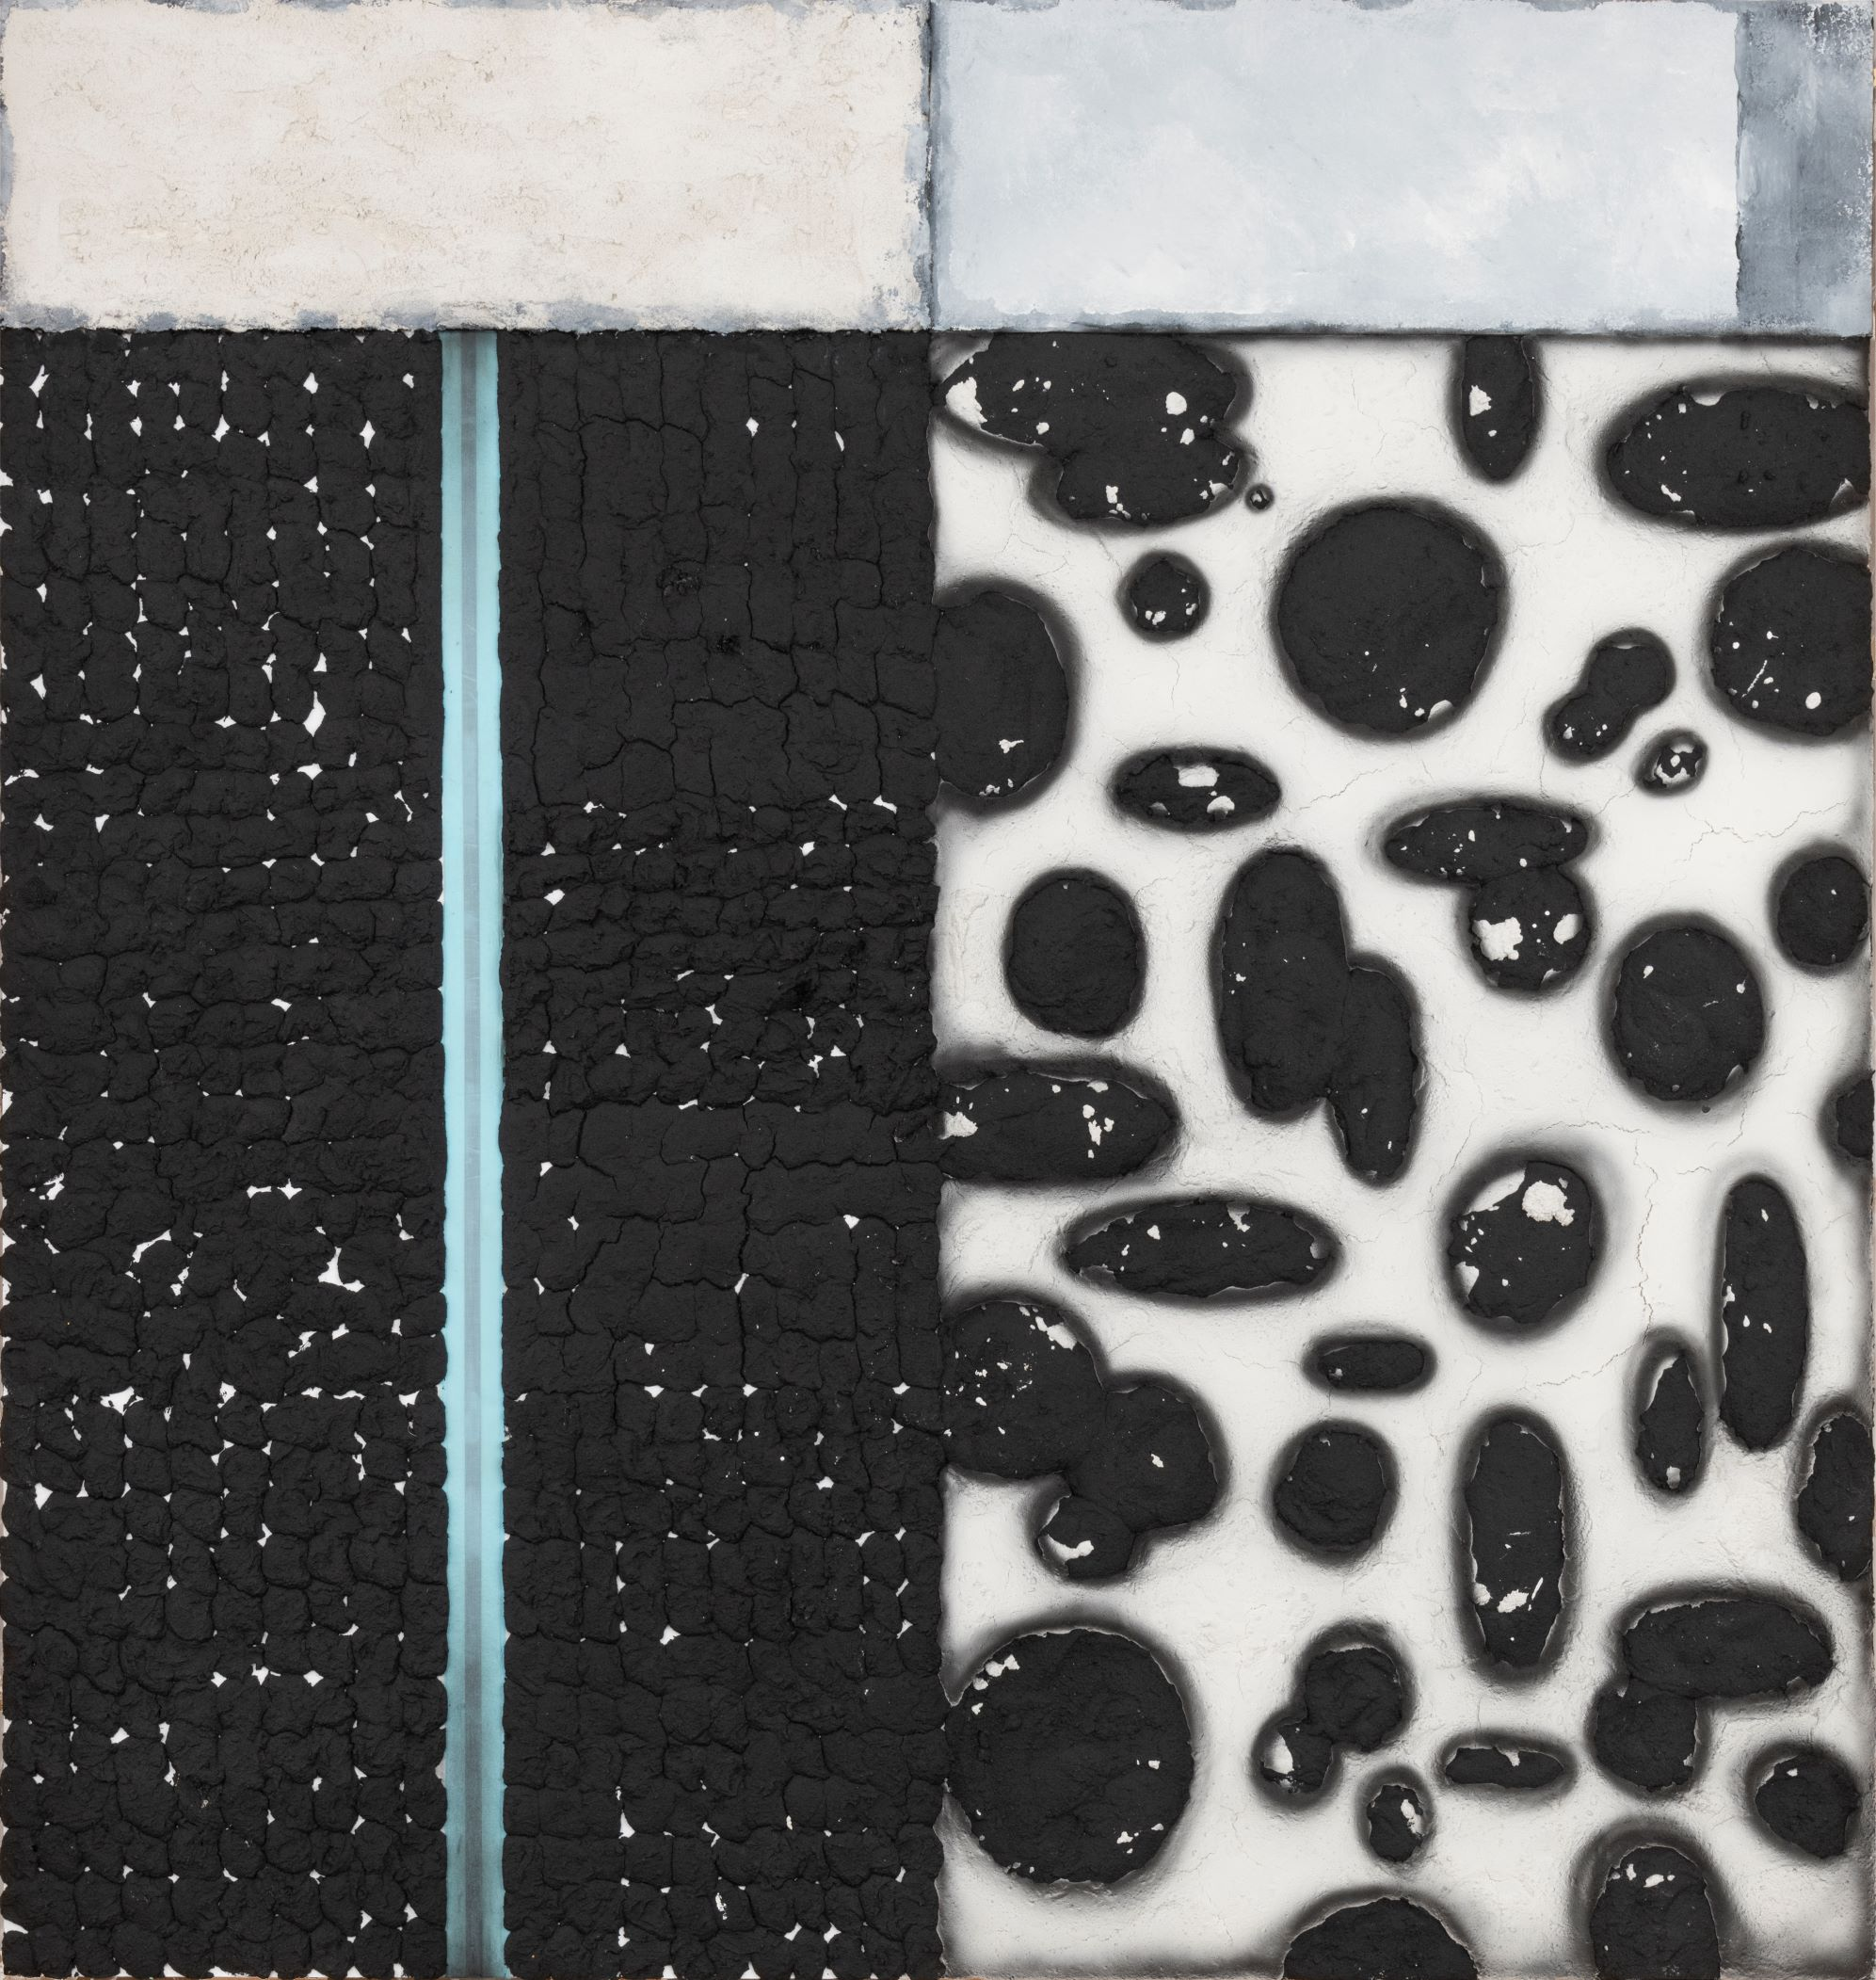 Vaughn Spann, Greyson, 2019, Polymer paint, flashe paint, and terry cloth on stretcher bars, 84 x 80 Inches, Unframed: 84 x 80 x 2 inches, Courtesy the artist and Night Gallery, Los Angeles, CA